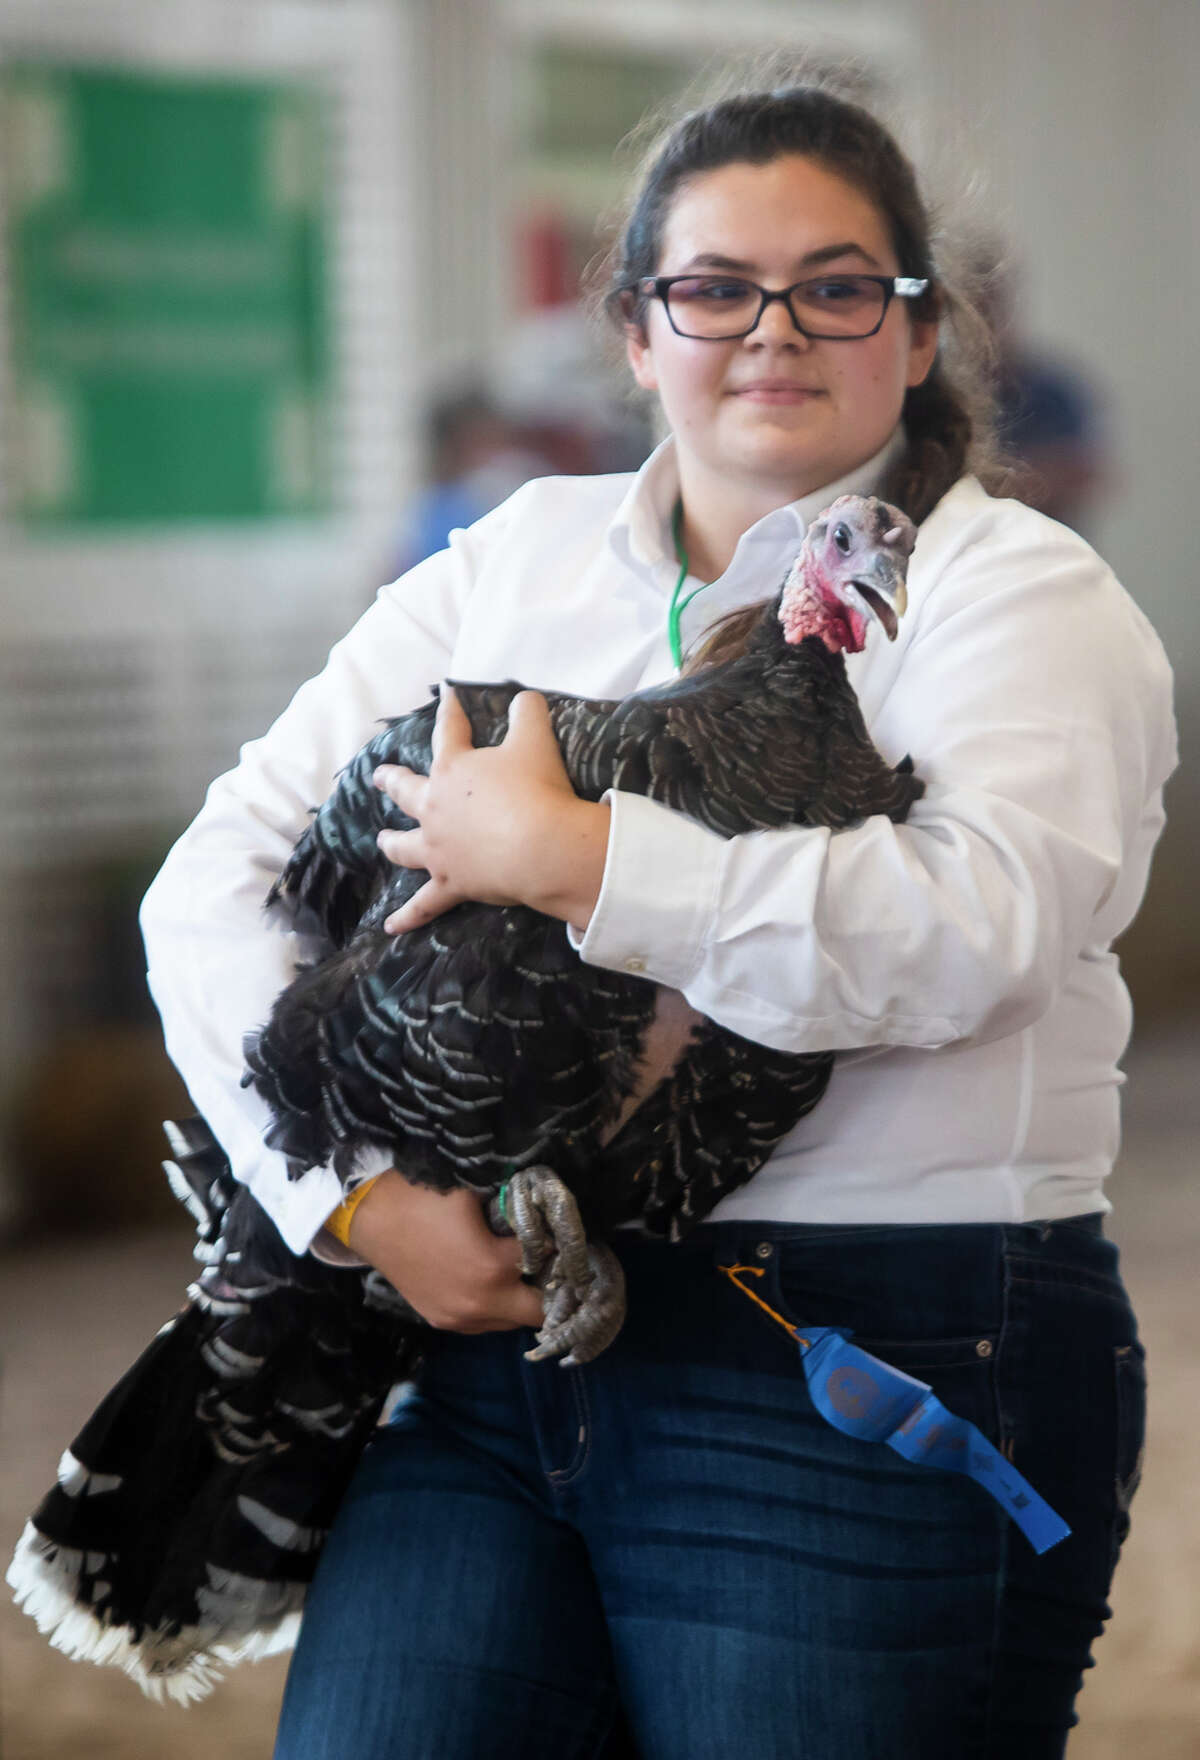 Kaylee Boyer shows her turkey during the Midland County Fair small animal auction Wednesday, Aug. 18, 2021 at the Midland County Fairgrounds. (Katy Kildee/kkildee@mdn.net)